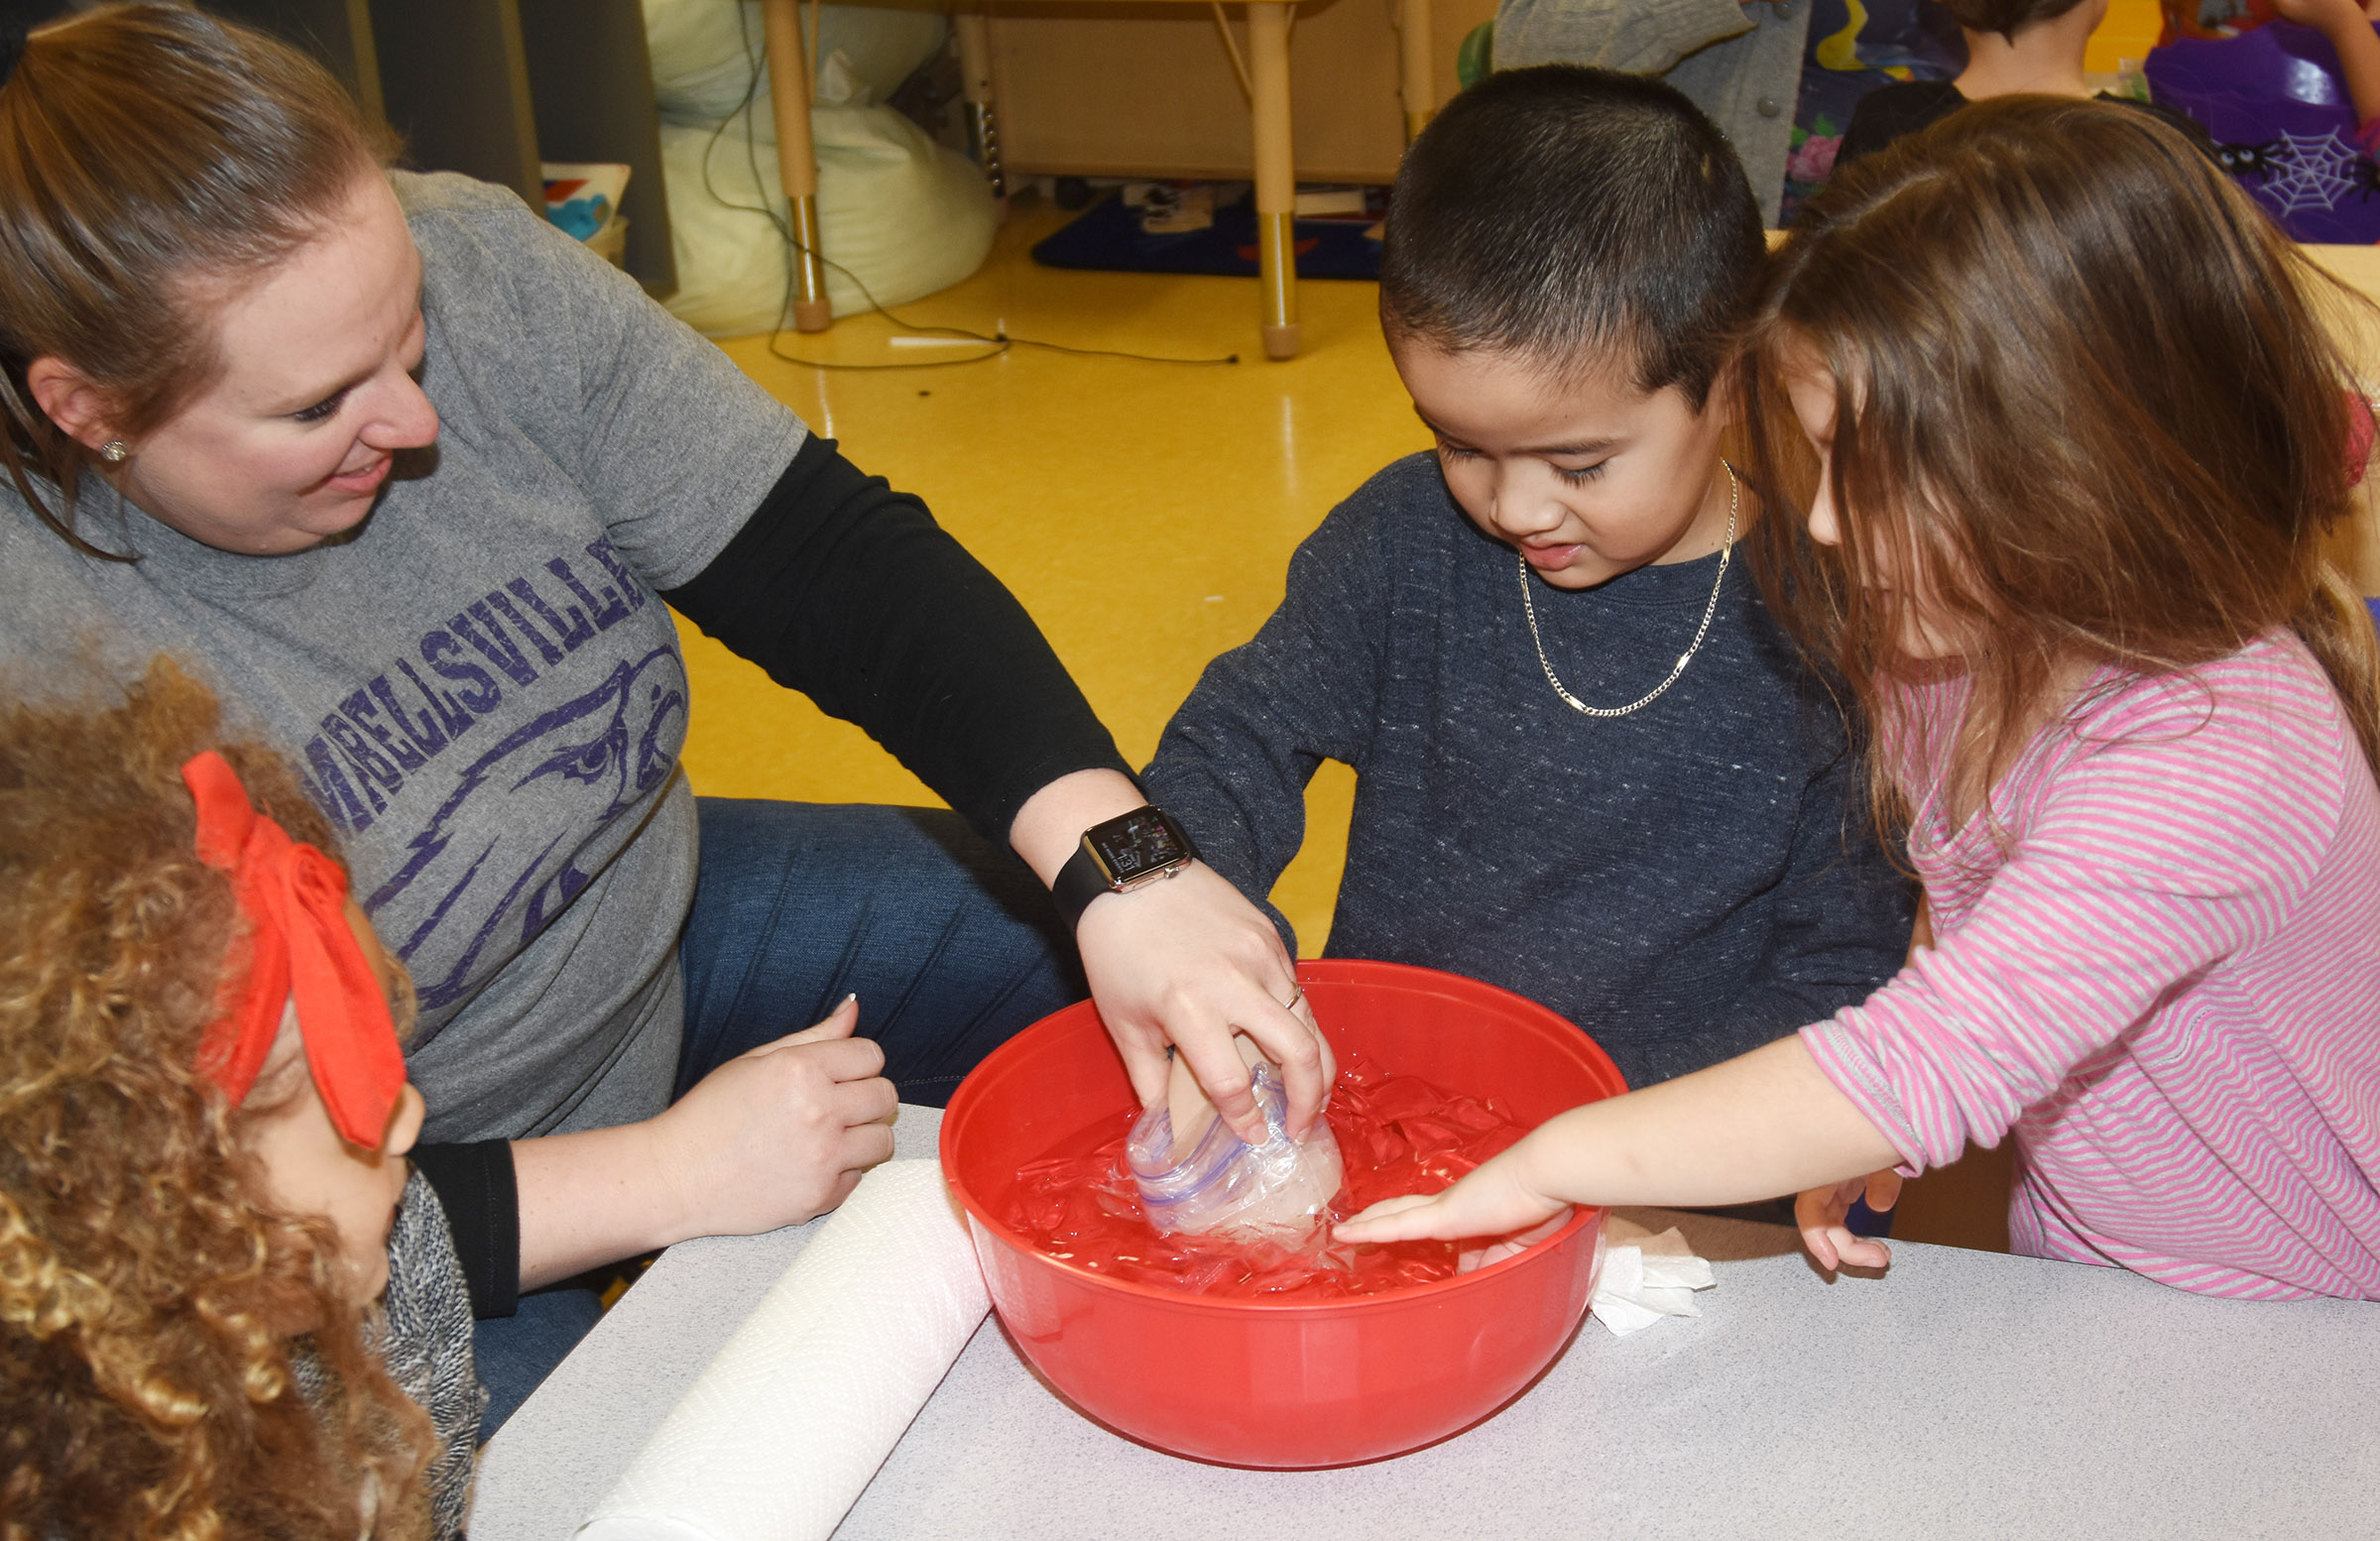 CES preschool teacher Julie Shelton helps Minh Turdo place his hand inside a bag of blubber to see how it keeps an animal warm in the winter. At right is Mila Moss.